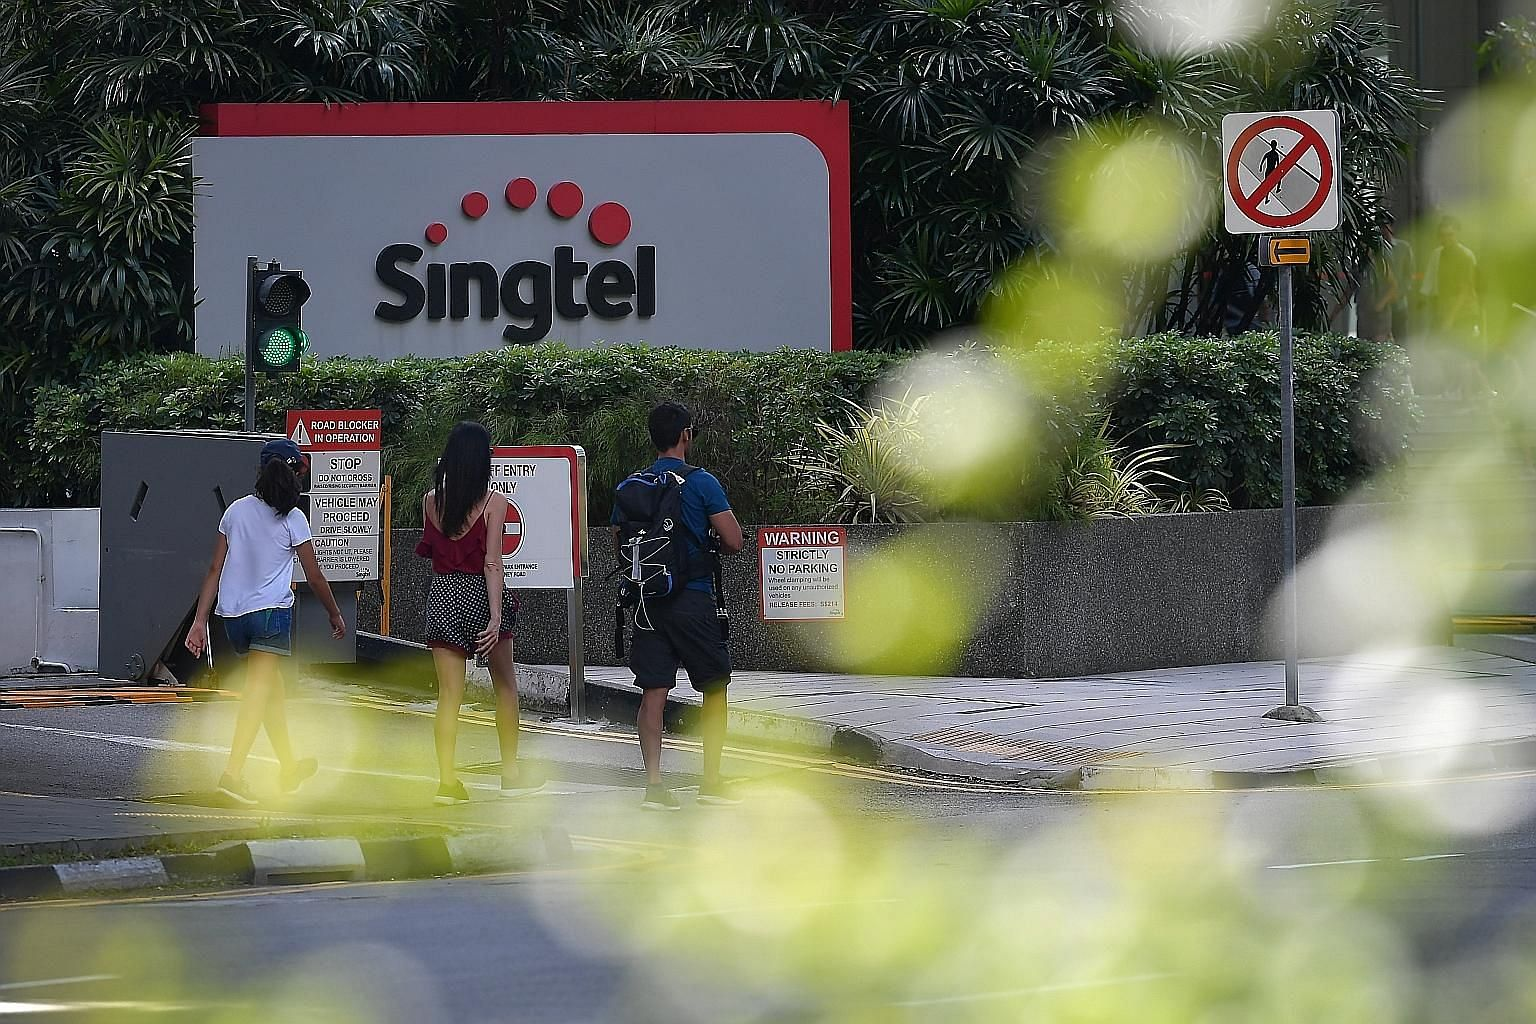 Citi analysts said selling the towers will free up cash for Singtel for dividends or capital expenditure in key markets like Australia to drive growth.